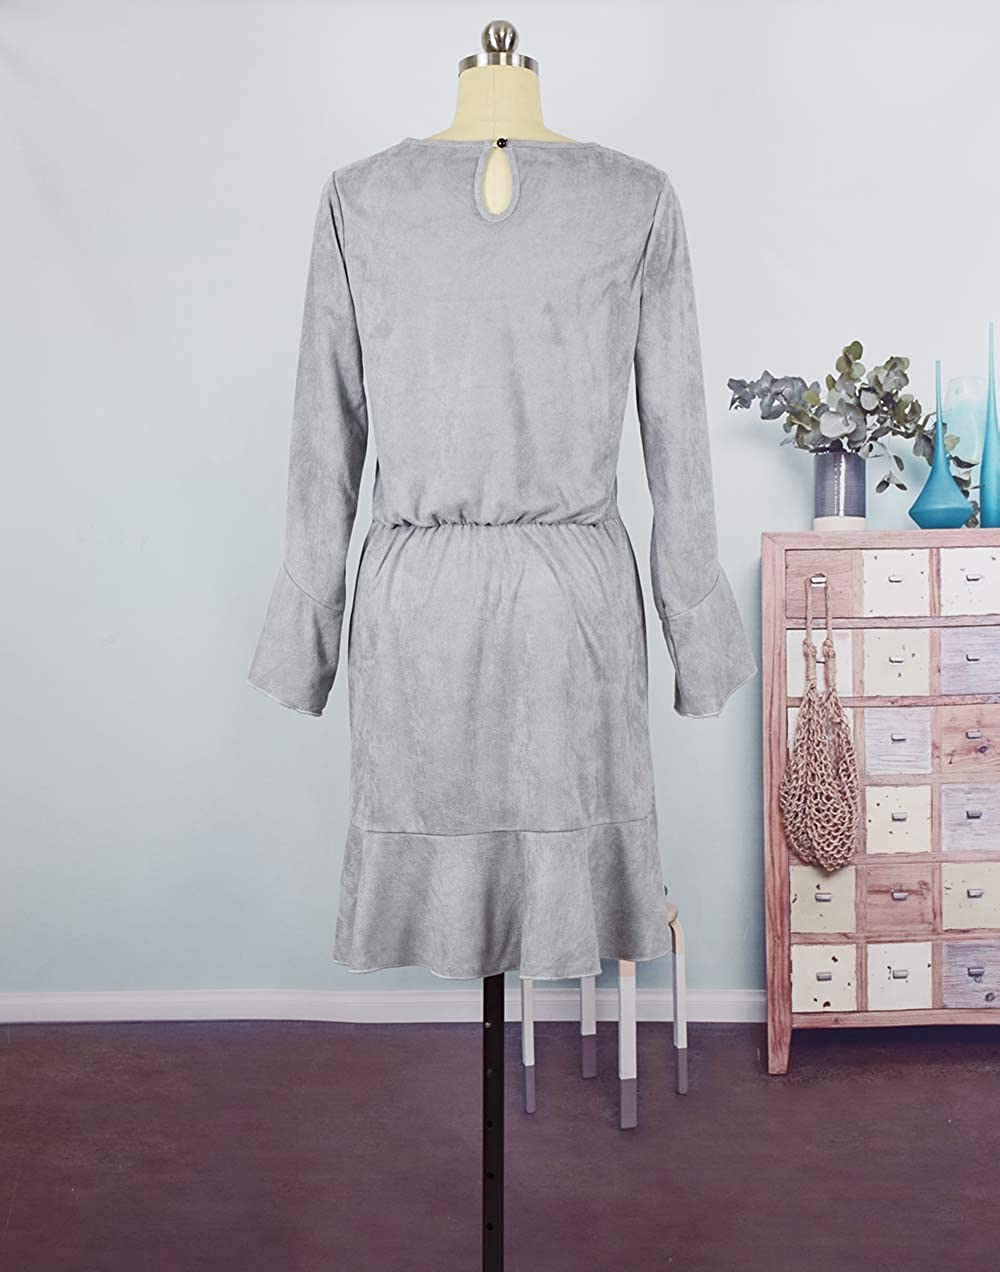 Mommy and Me Scoop Neck Bell Sleeve Ruffle Dress Family Matching Velvet One Piece Fall Winter Dress